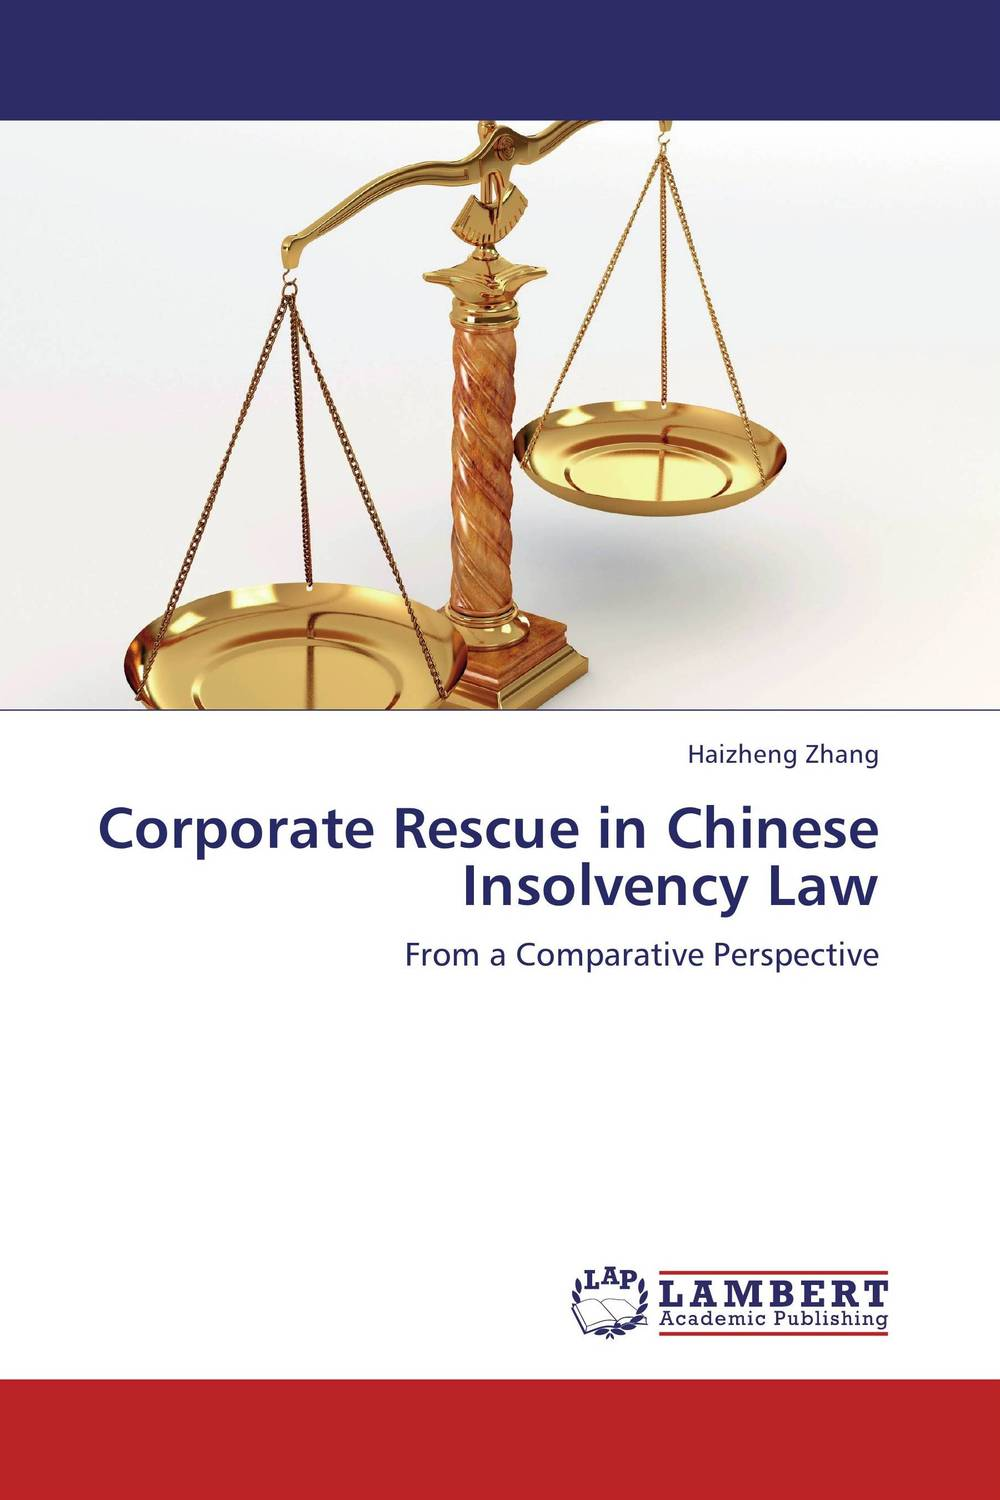 Corporate Rescue in Chinese Insolvency Law edith hotchkiss corporate financial distress and bankruptcy predict and avoid bankruptcy analyze and invest in distressed debt